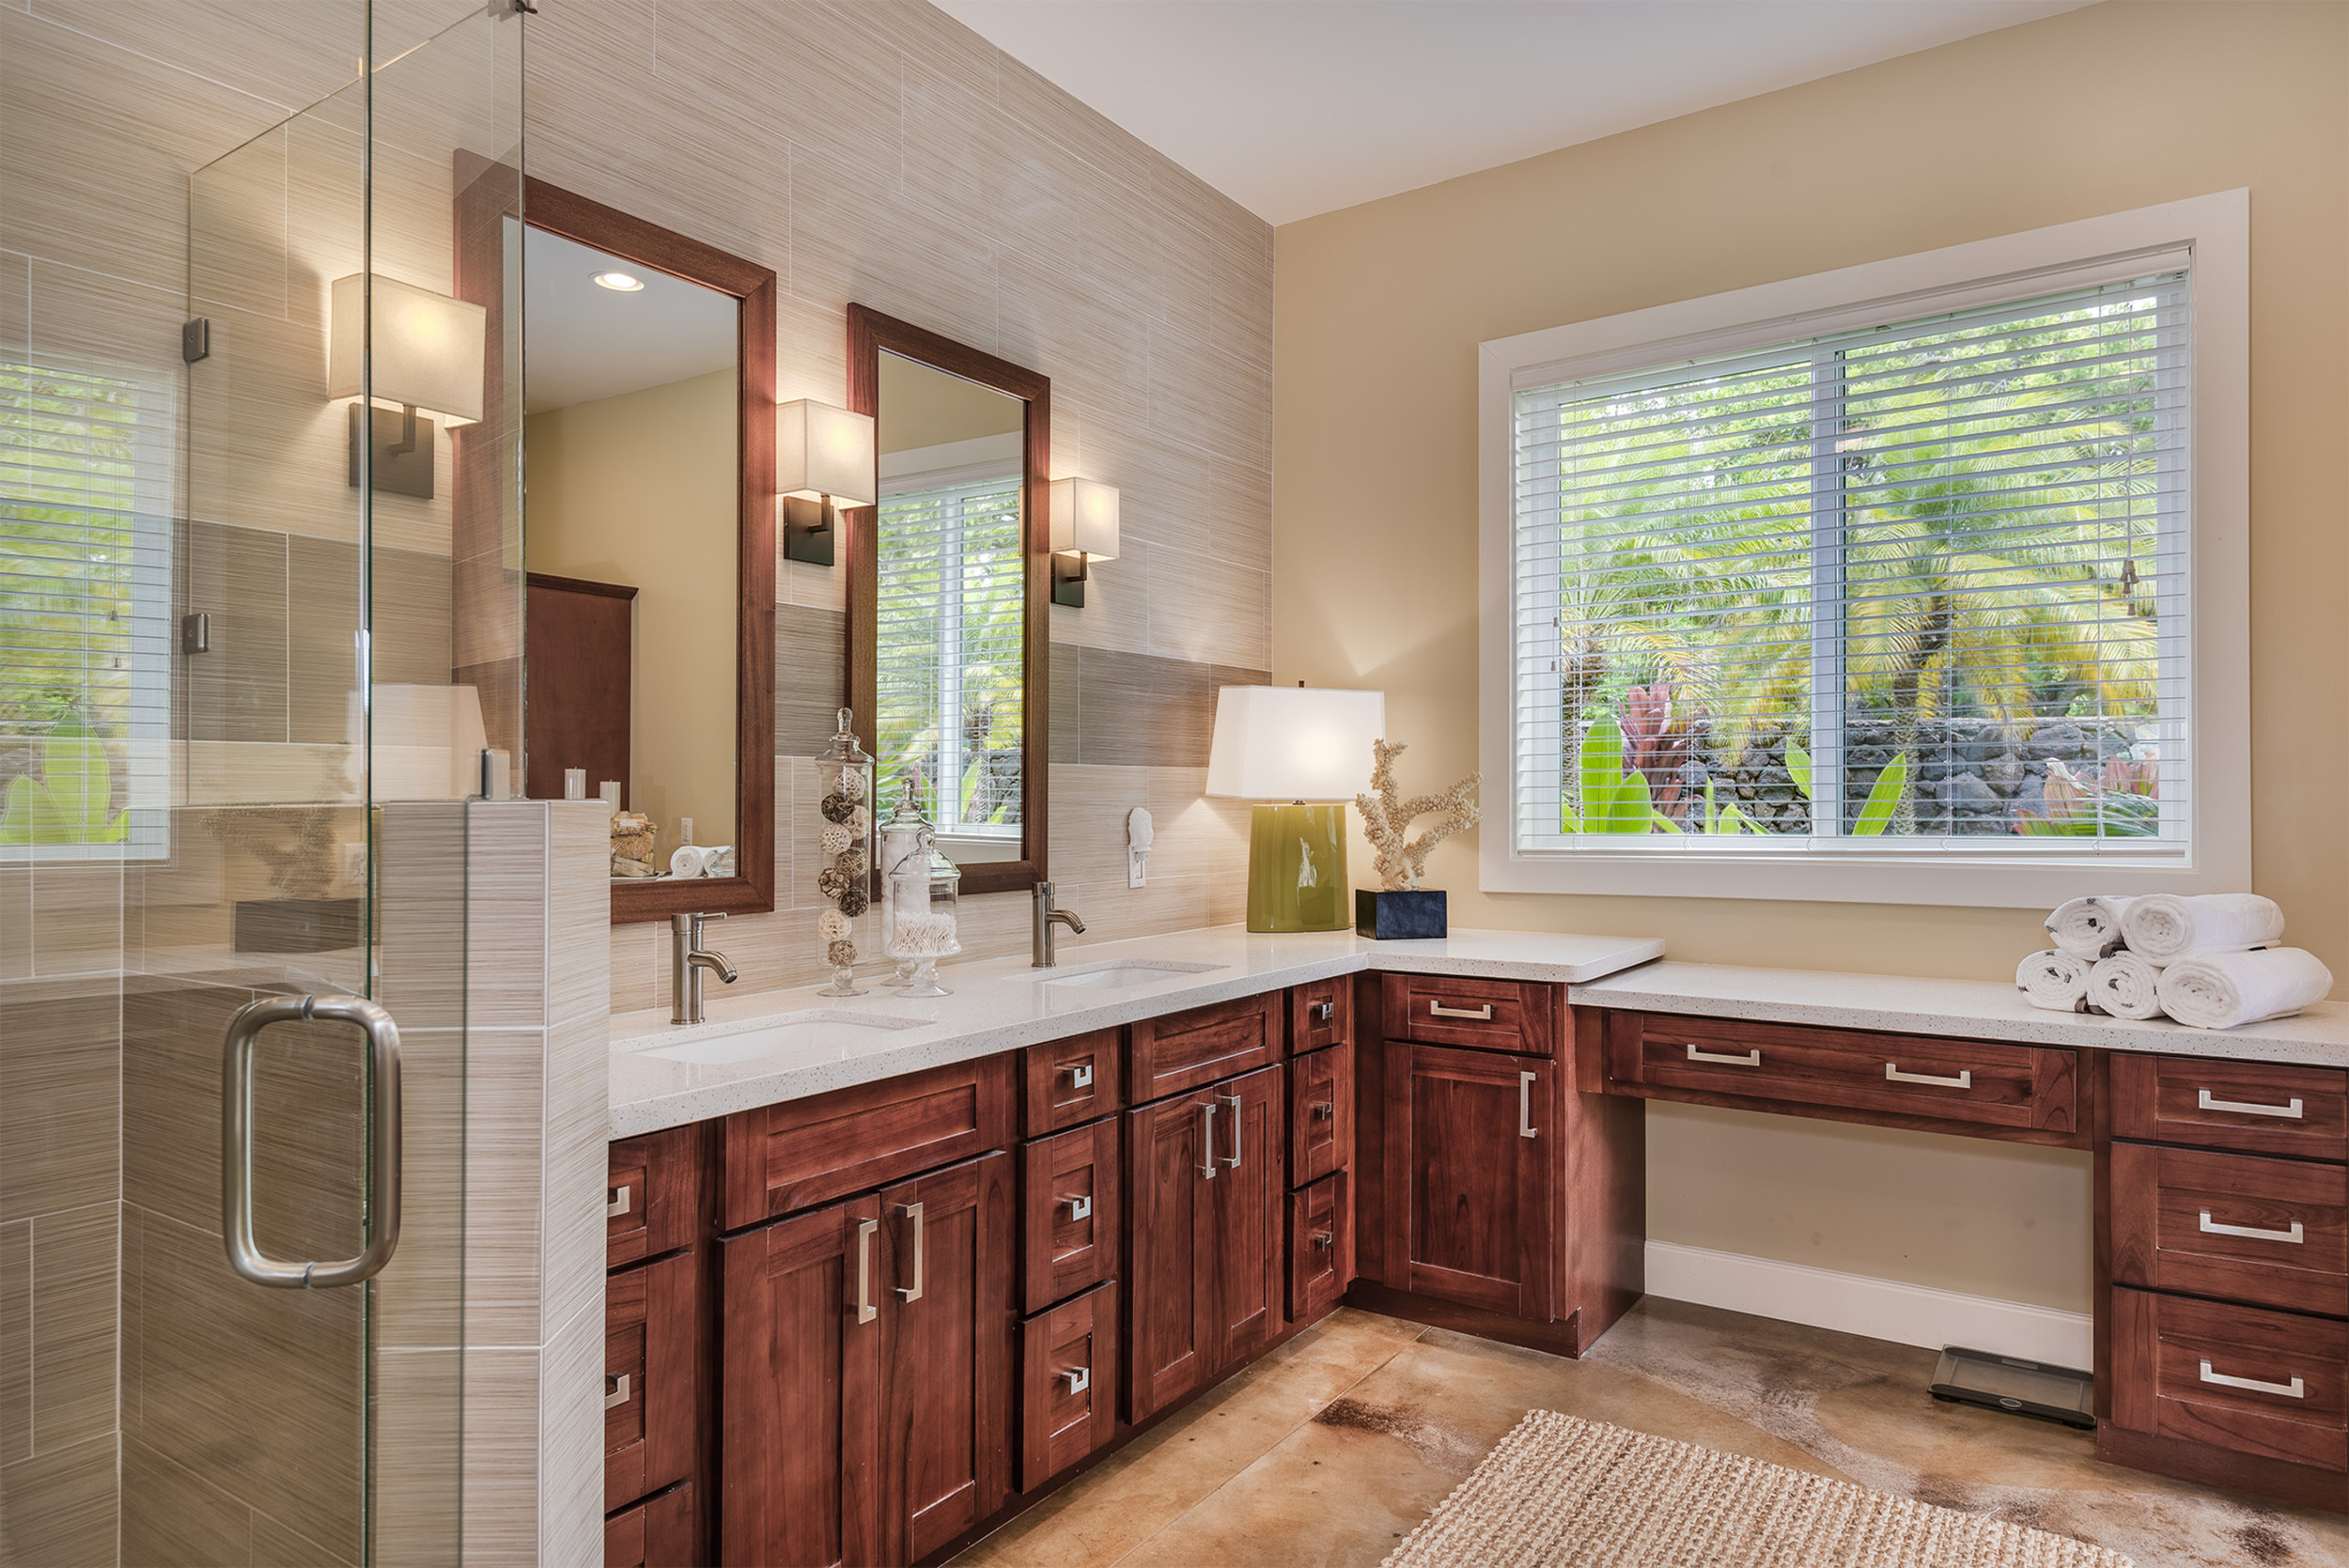 Luxury Home Staging Hawaii, Home Staging Hawaii, Inouye Interiors LLCBest Home Stagers Hawaii, Home Stagers in Hawaii, Stagers Hawaii, Home Stager Hawaii, Luxury Home Stager Hawaii